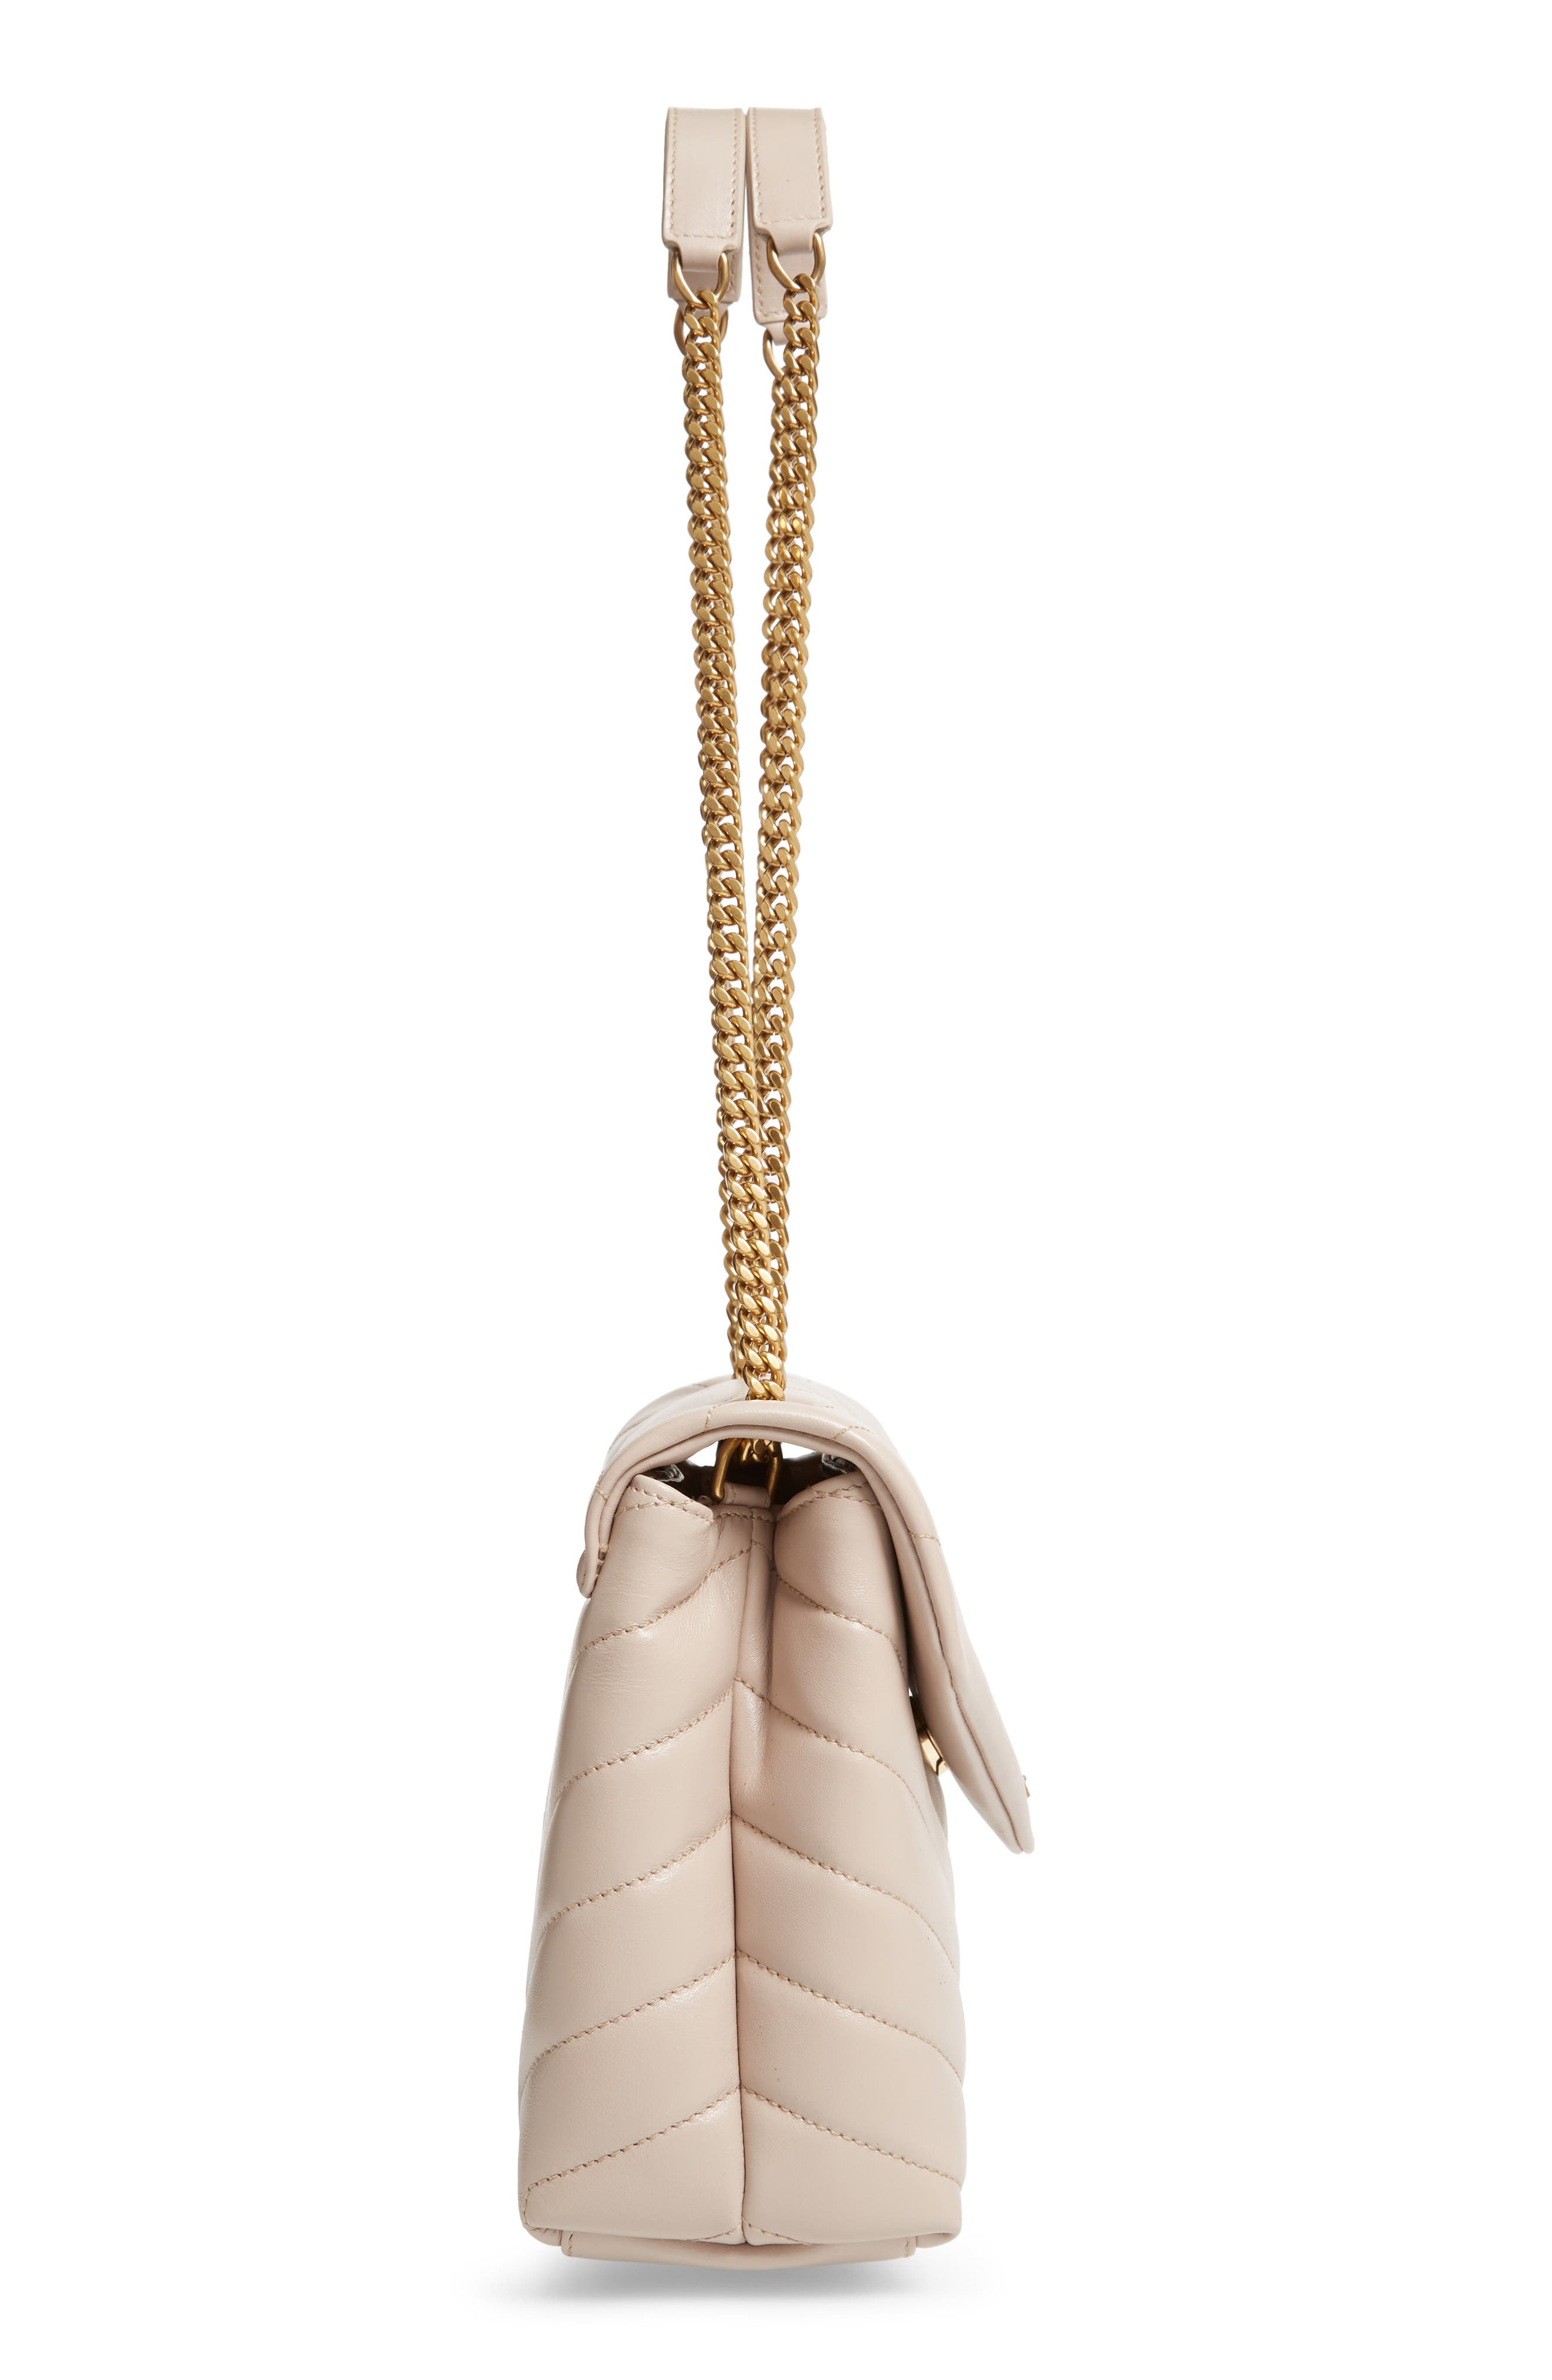 SAINT LAURENT,                             Small Loulou Leather Shoulder Bag,                             Alternate thumbnail 5, color,                             LIGHT NATURAL